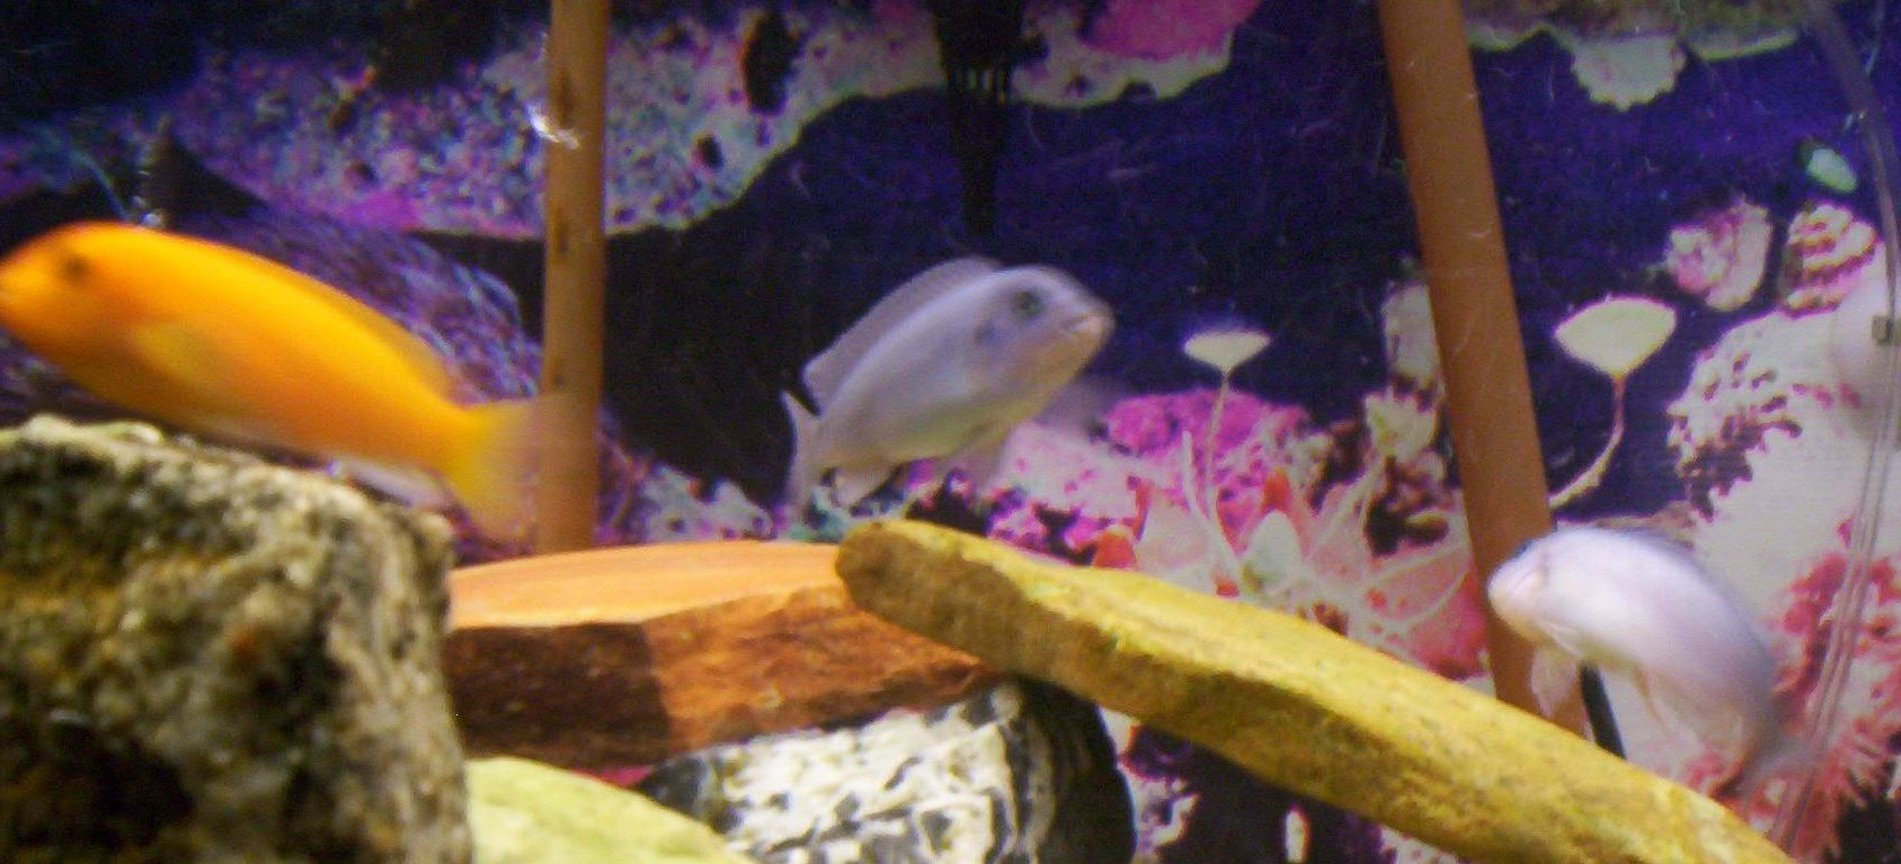 freshwater fish - pseudotropheus estherae - red zebra cichlid stocking in 75 gallons tank - Some pics of my fish